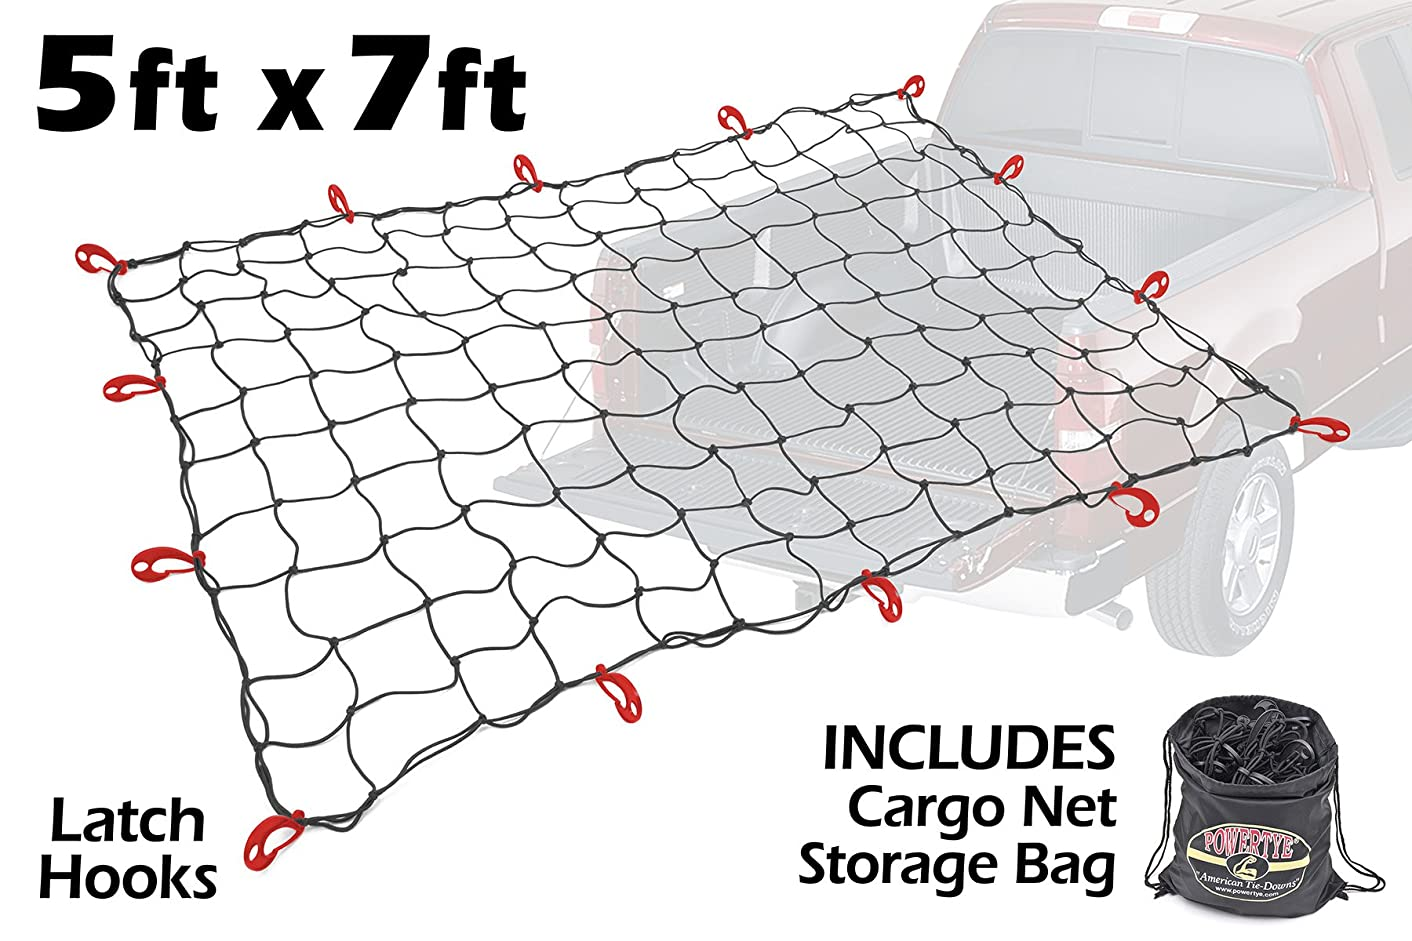 5ft x 7ft PowerTye Mfg Truck & Trailer Large Elastic Black Cargo Net With Drawstring Storage Bag | Includes 14 Large Latch Hooks, Black w/Bag